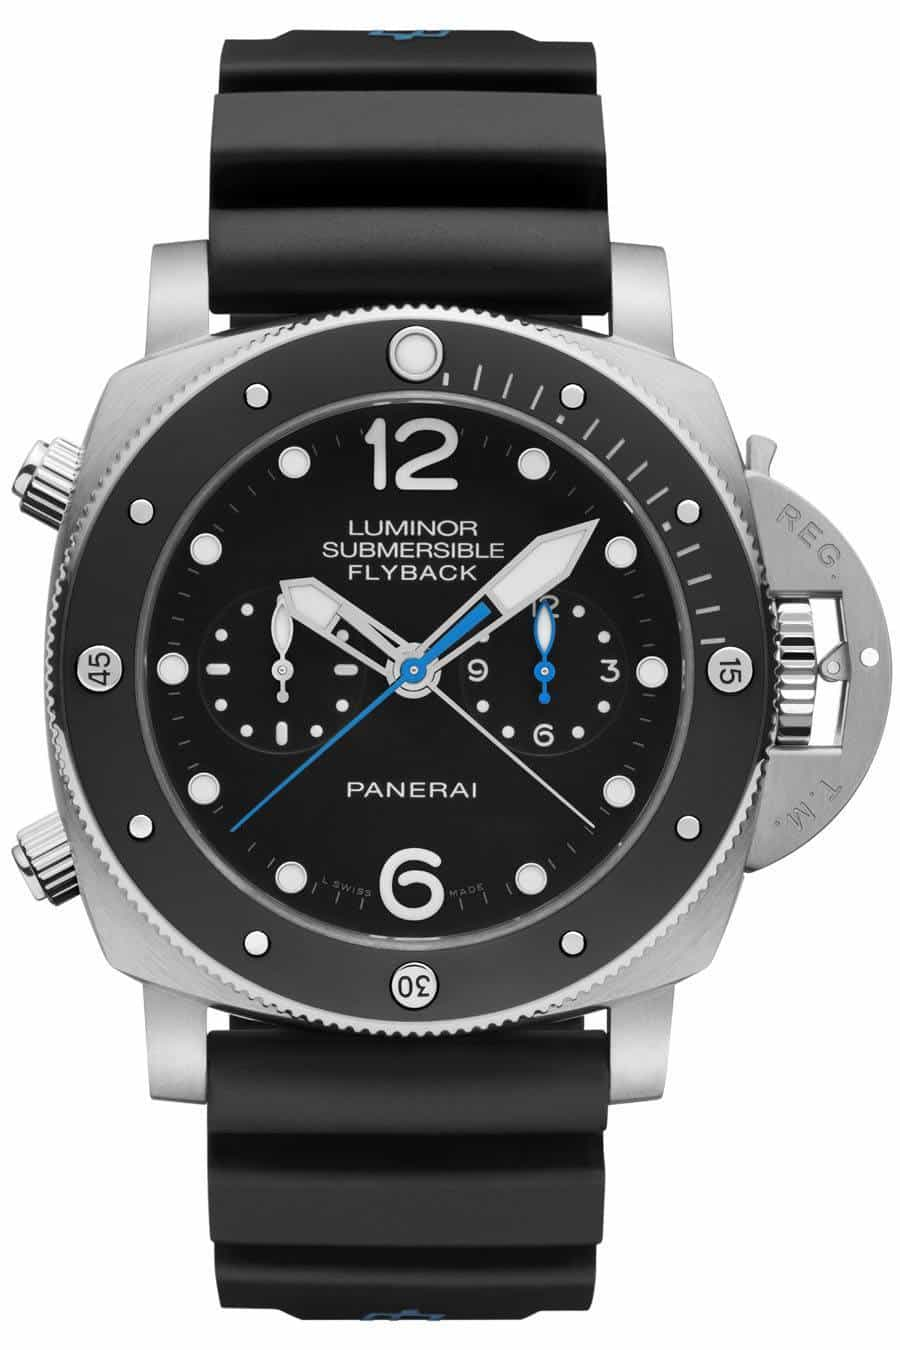 Diving Watches - Panerai Luminor Submersible 1950 3 Days Chrono Flyback Automatic Titanio